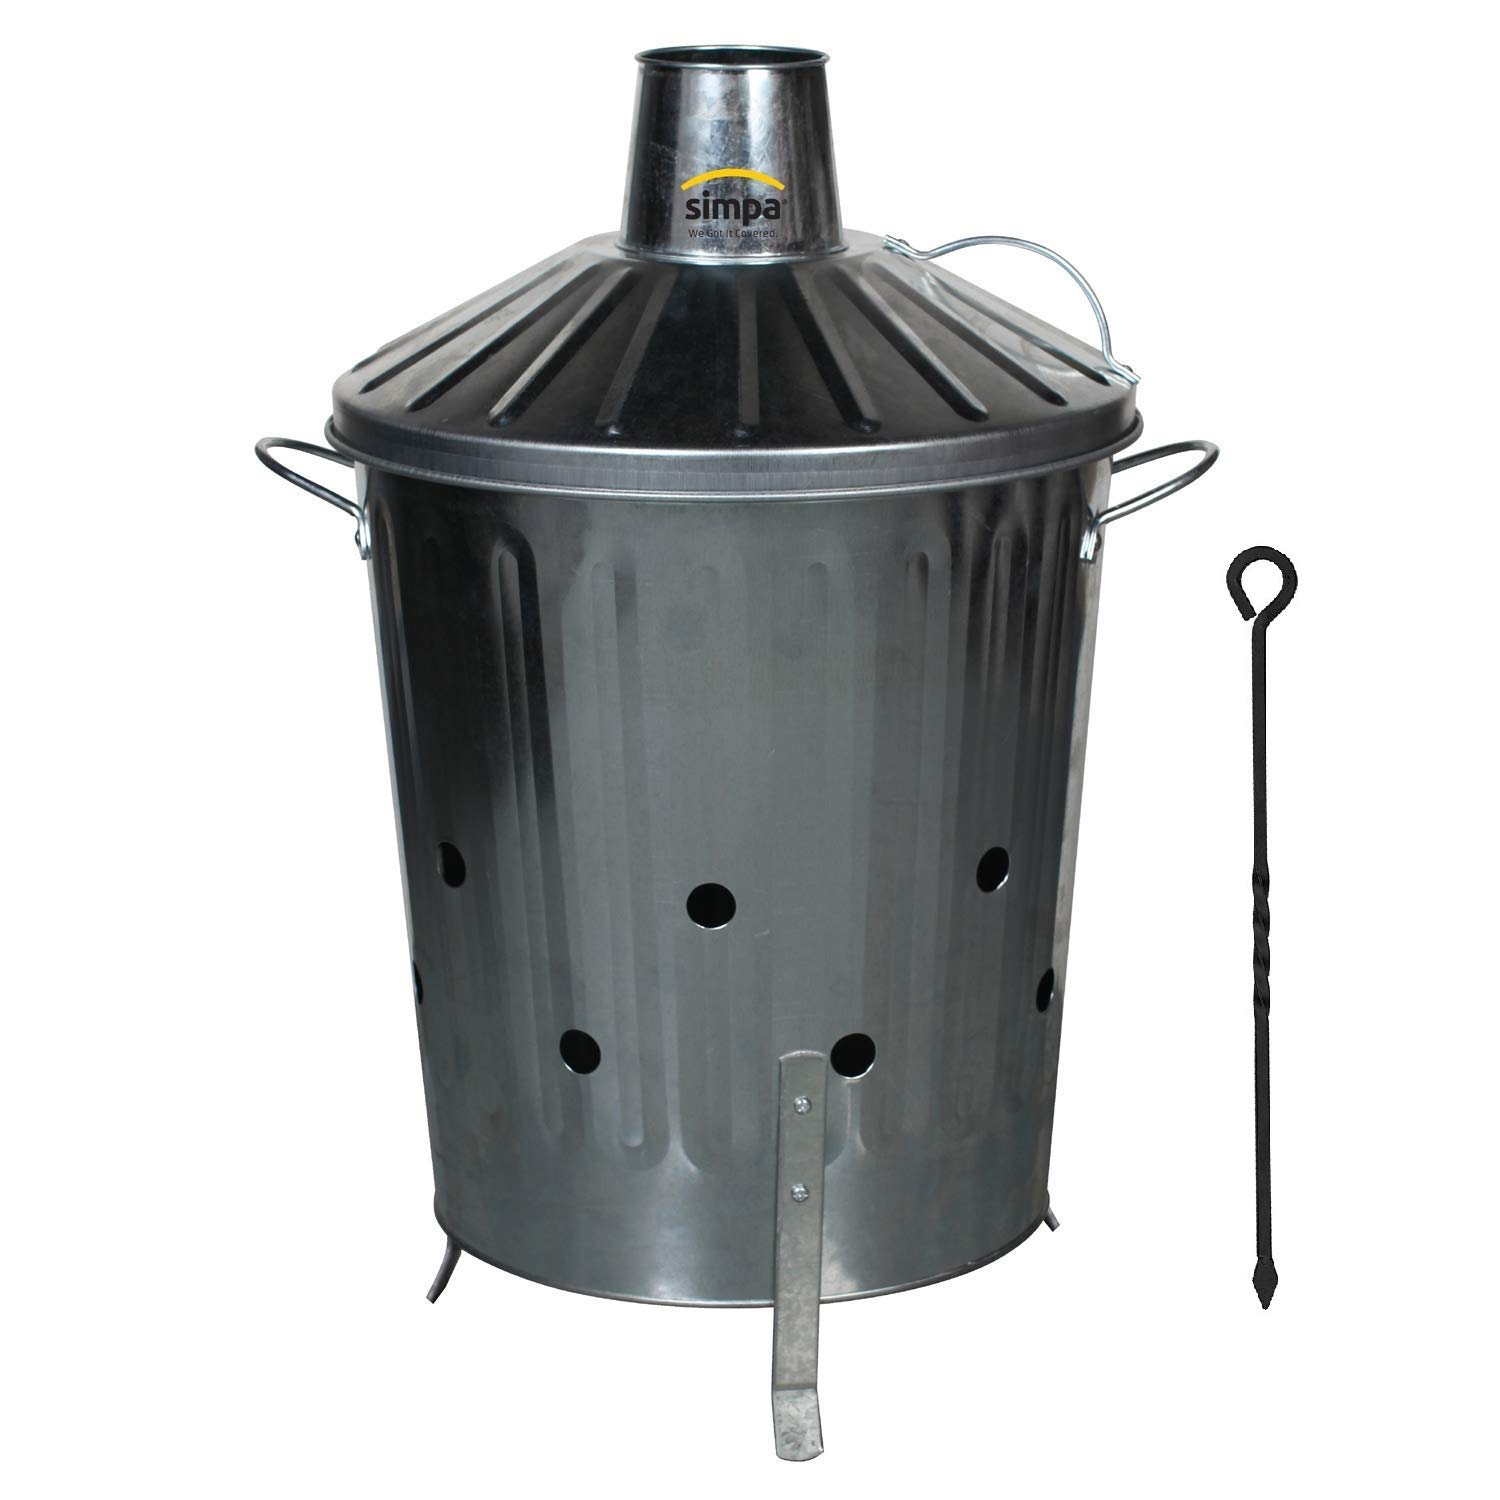 CrazyGadget® Small Medium Large Extra Large Galvanised Metal Incinerator Fire Burning Bin with Lid + Free Ash Poker (15L)